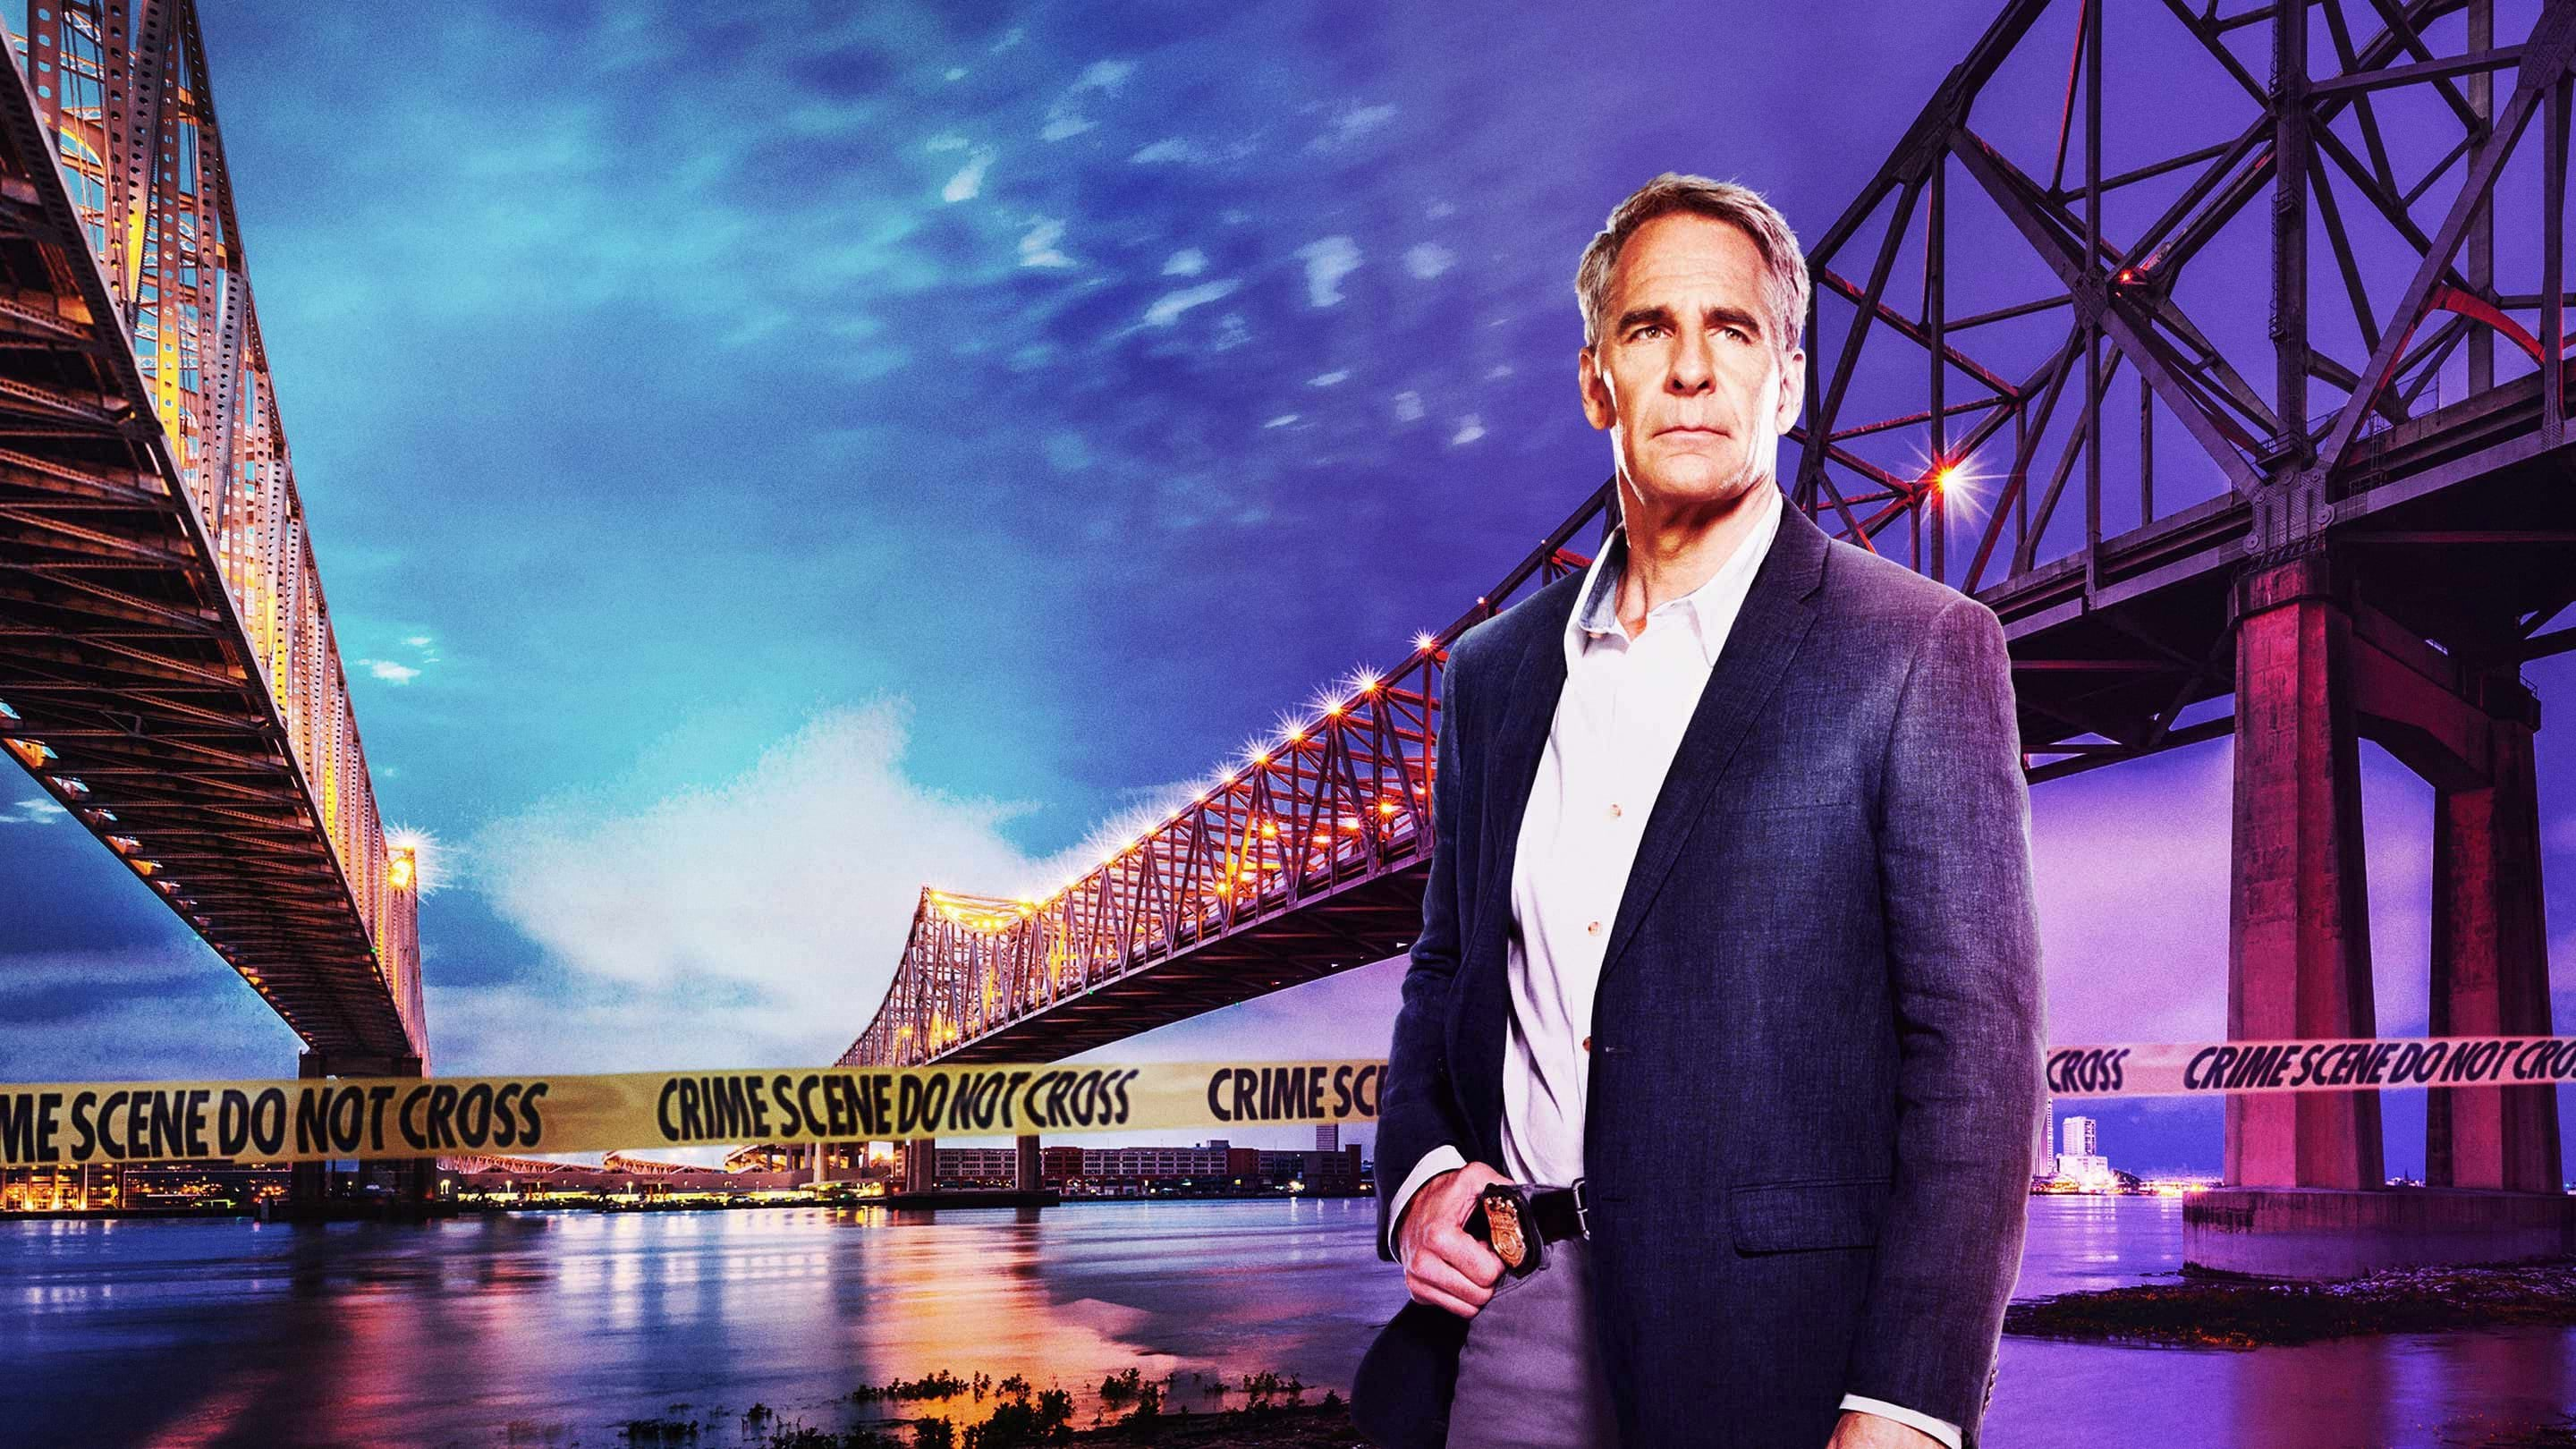 NCIS: New Orleans Season 7 Episode 8